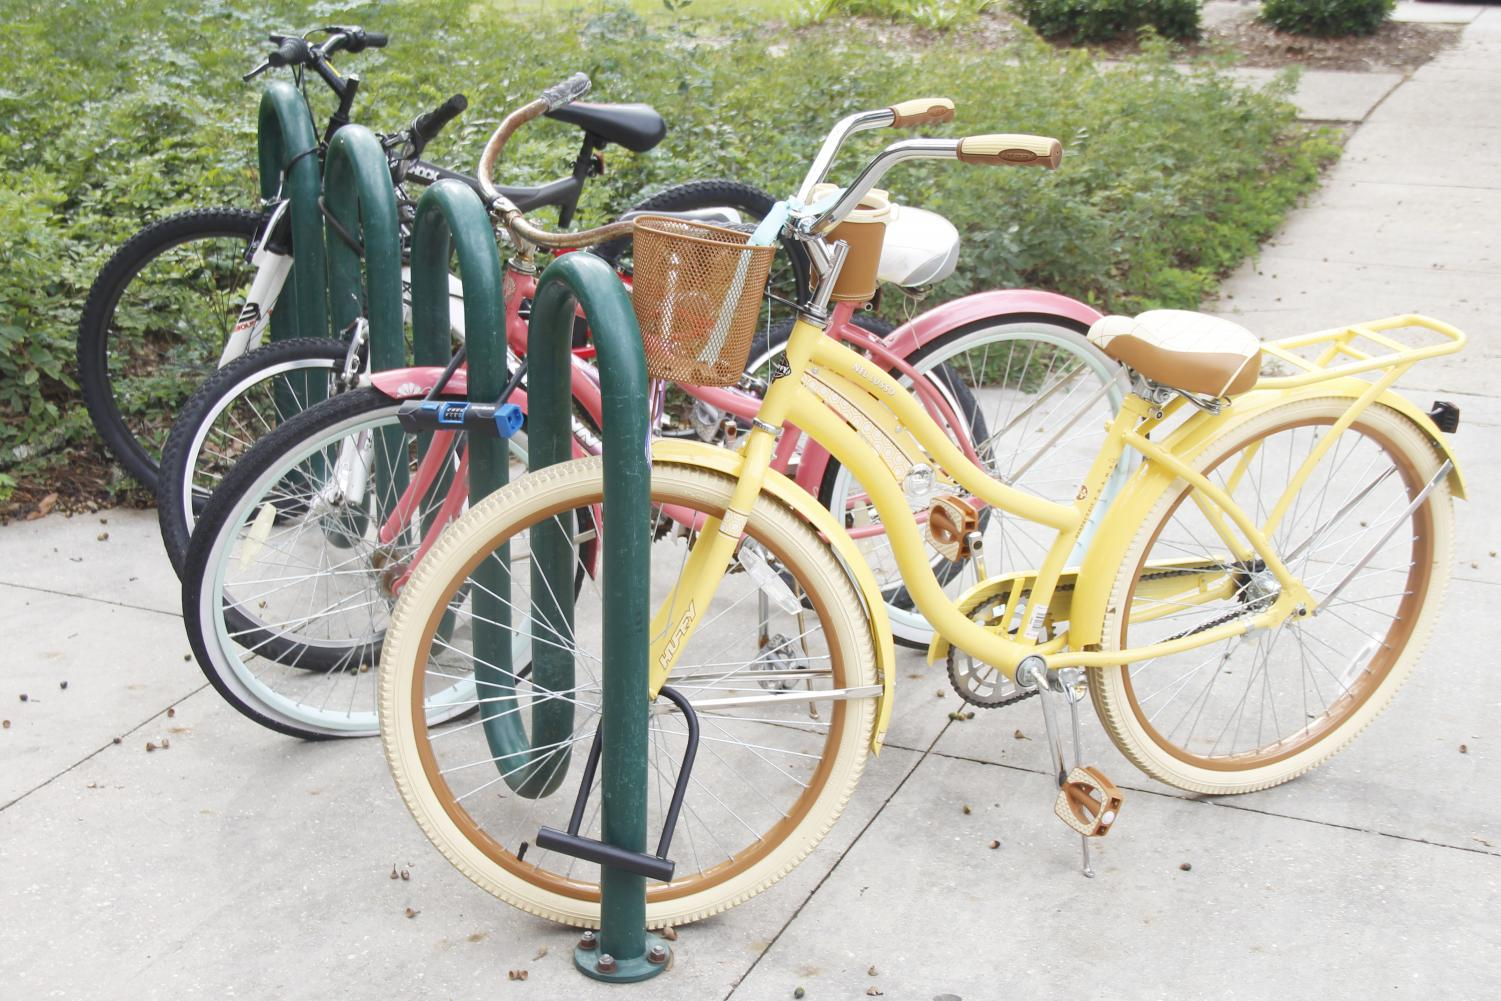 Transportation Services is looking at places on campus where more bicycle racks could benefit both students and faculty following the instituted bicycle policy that will require registration starting on Jan. 1, 2019.